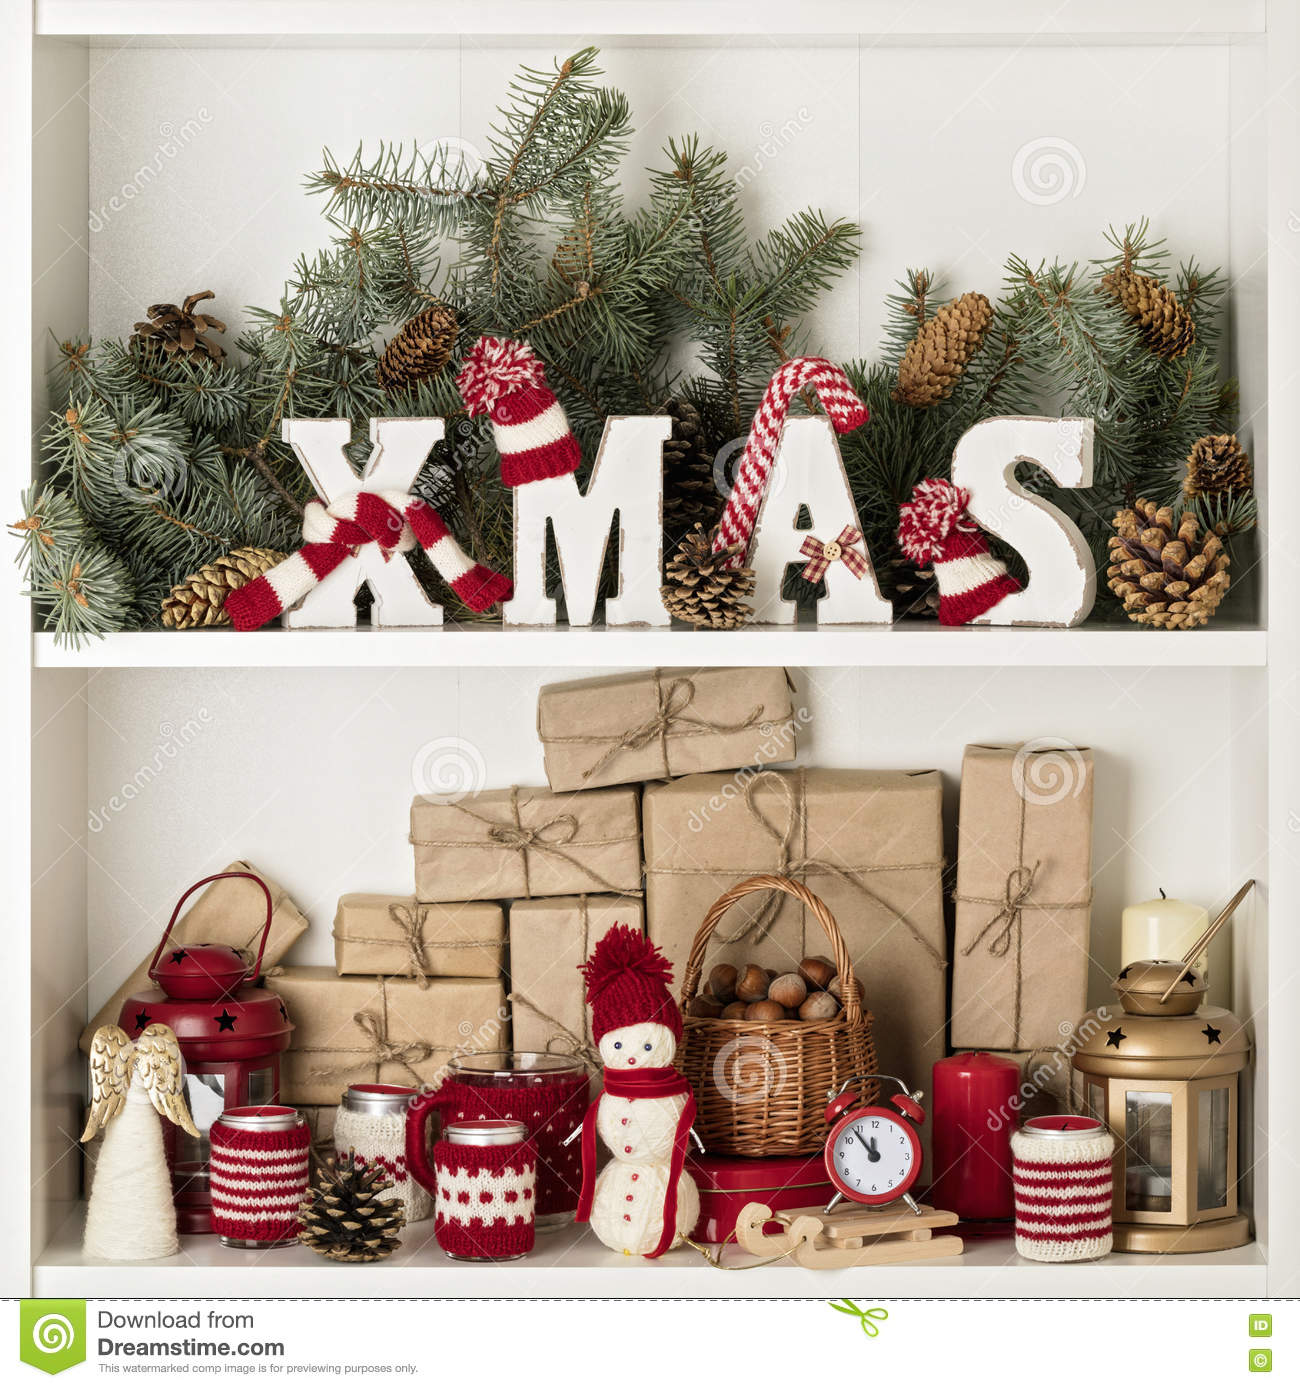 Merry Christmas Wooden Letters Xmas In Knitted Hats And Scarf I